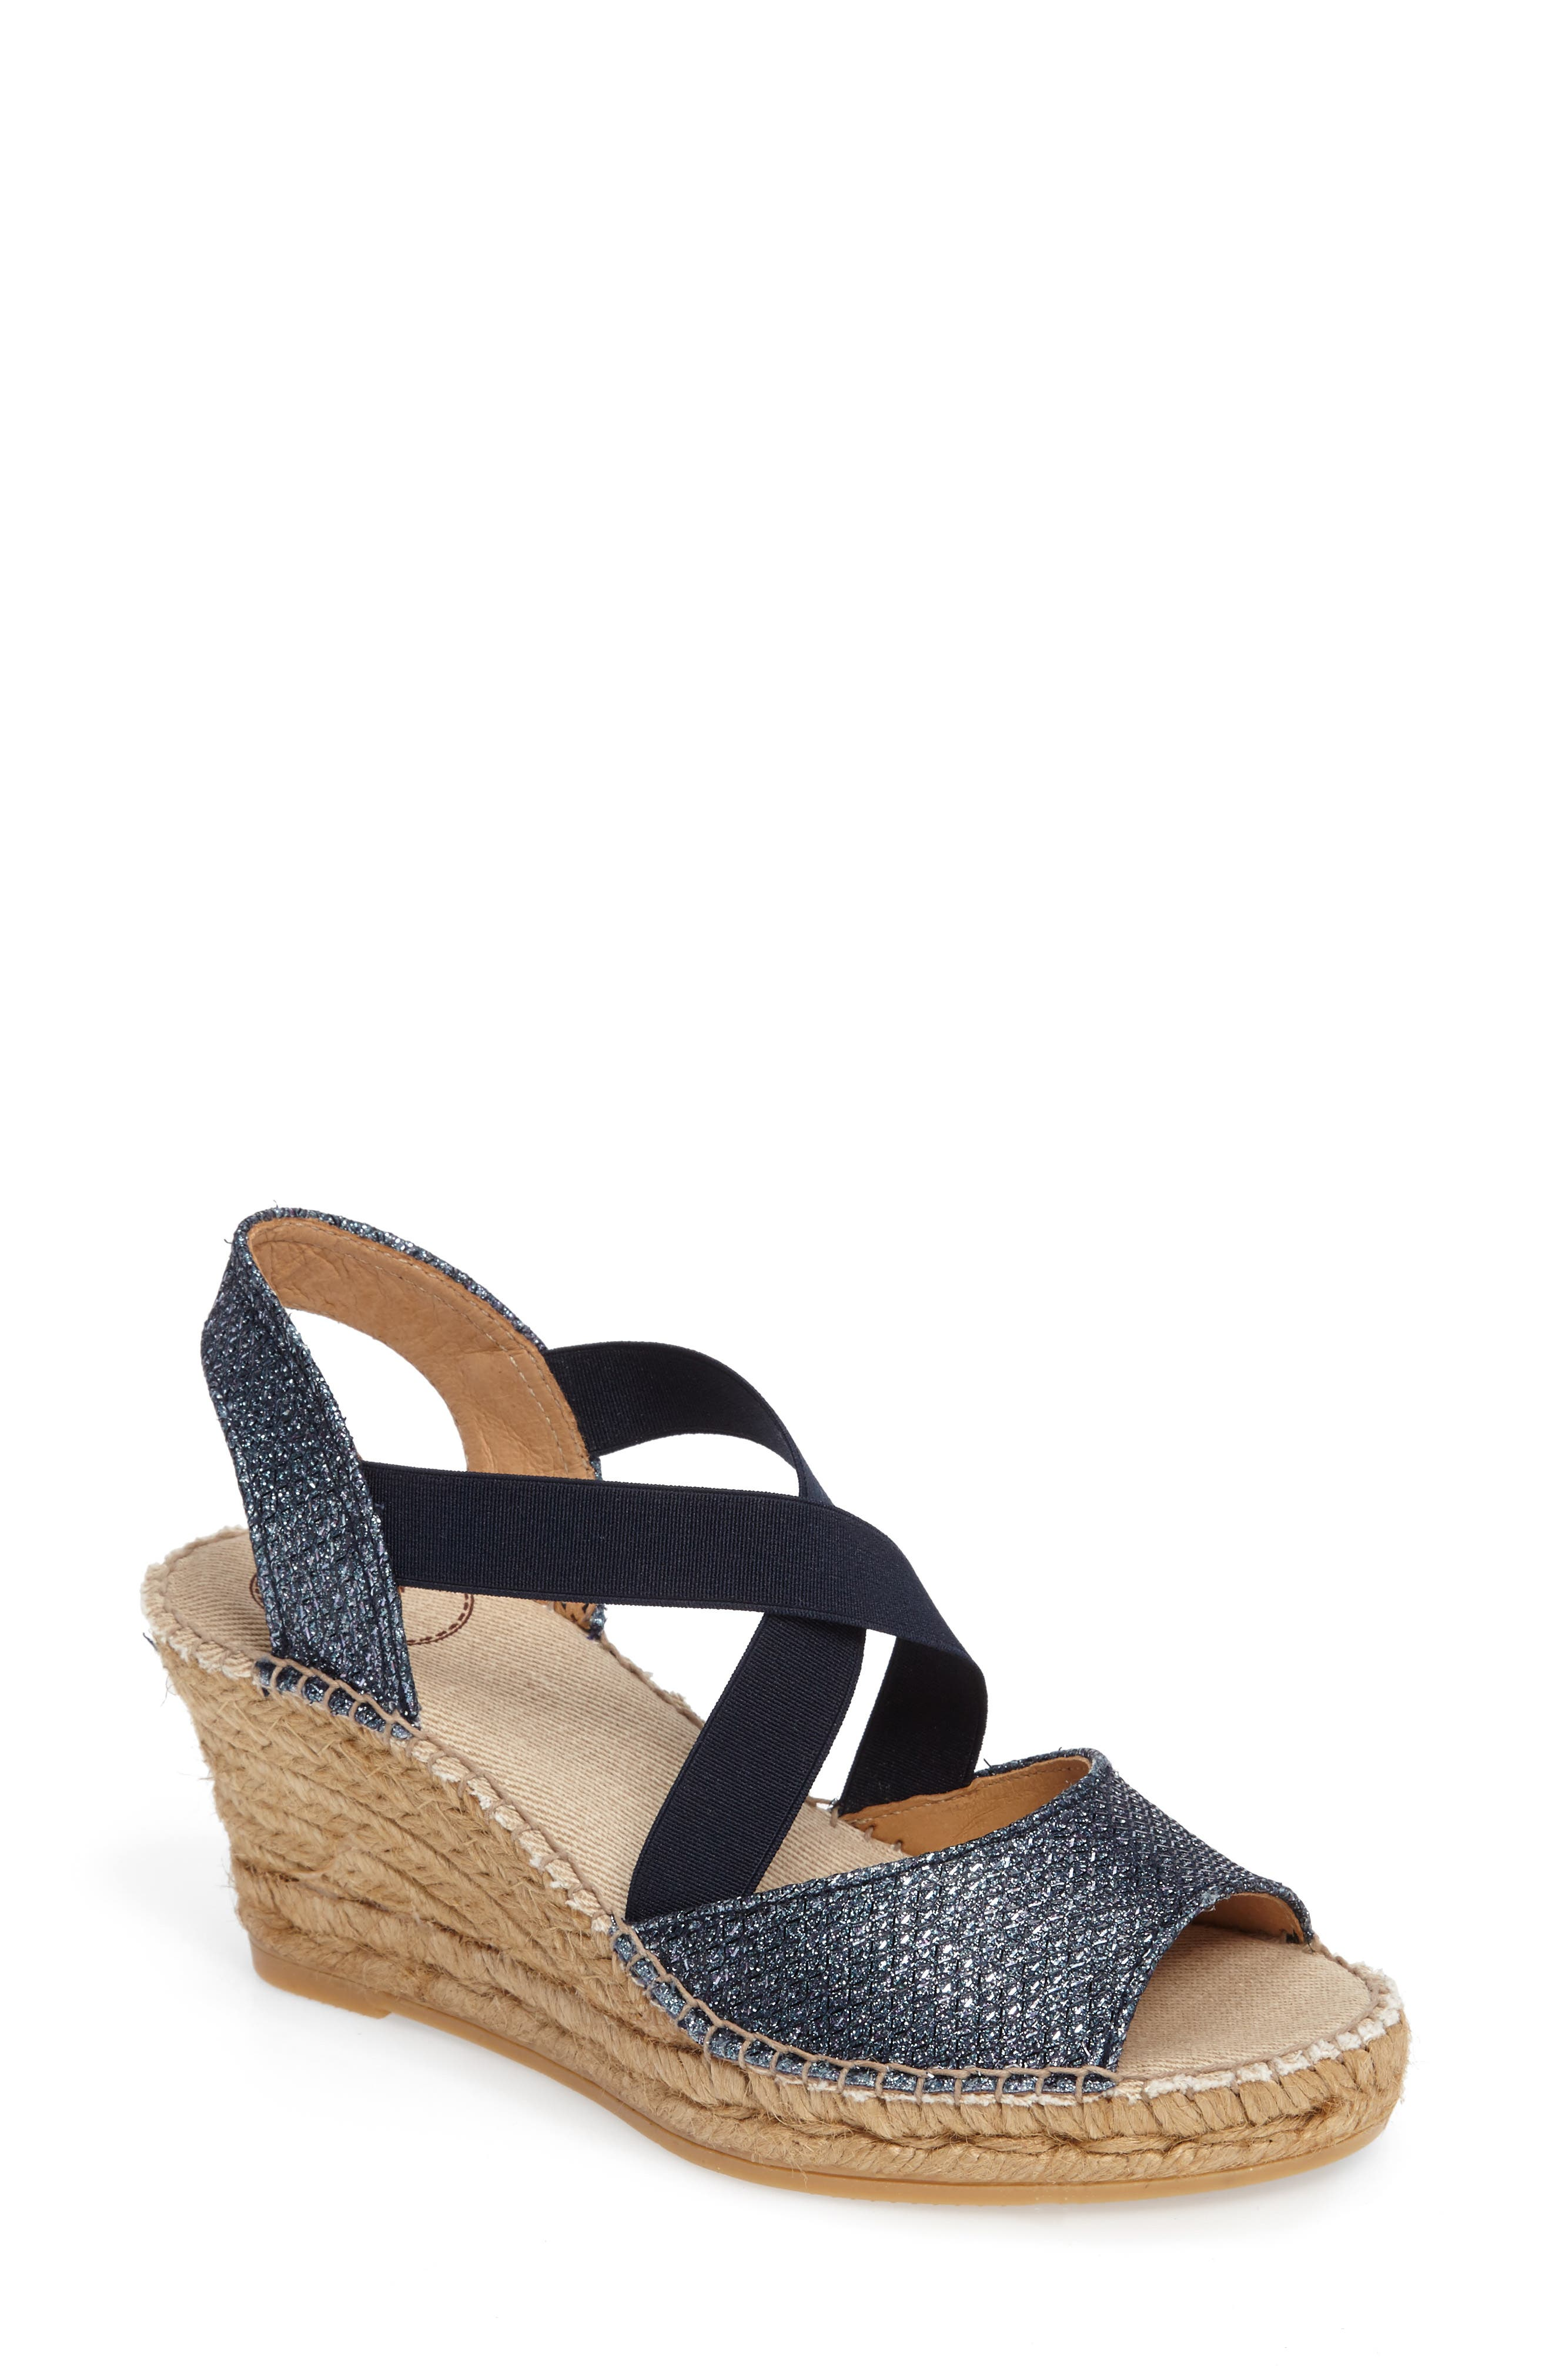 Sol Wedge Espadrille Sandal,                             Main thumbnail 1, color,                             NAVY FABRIC